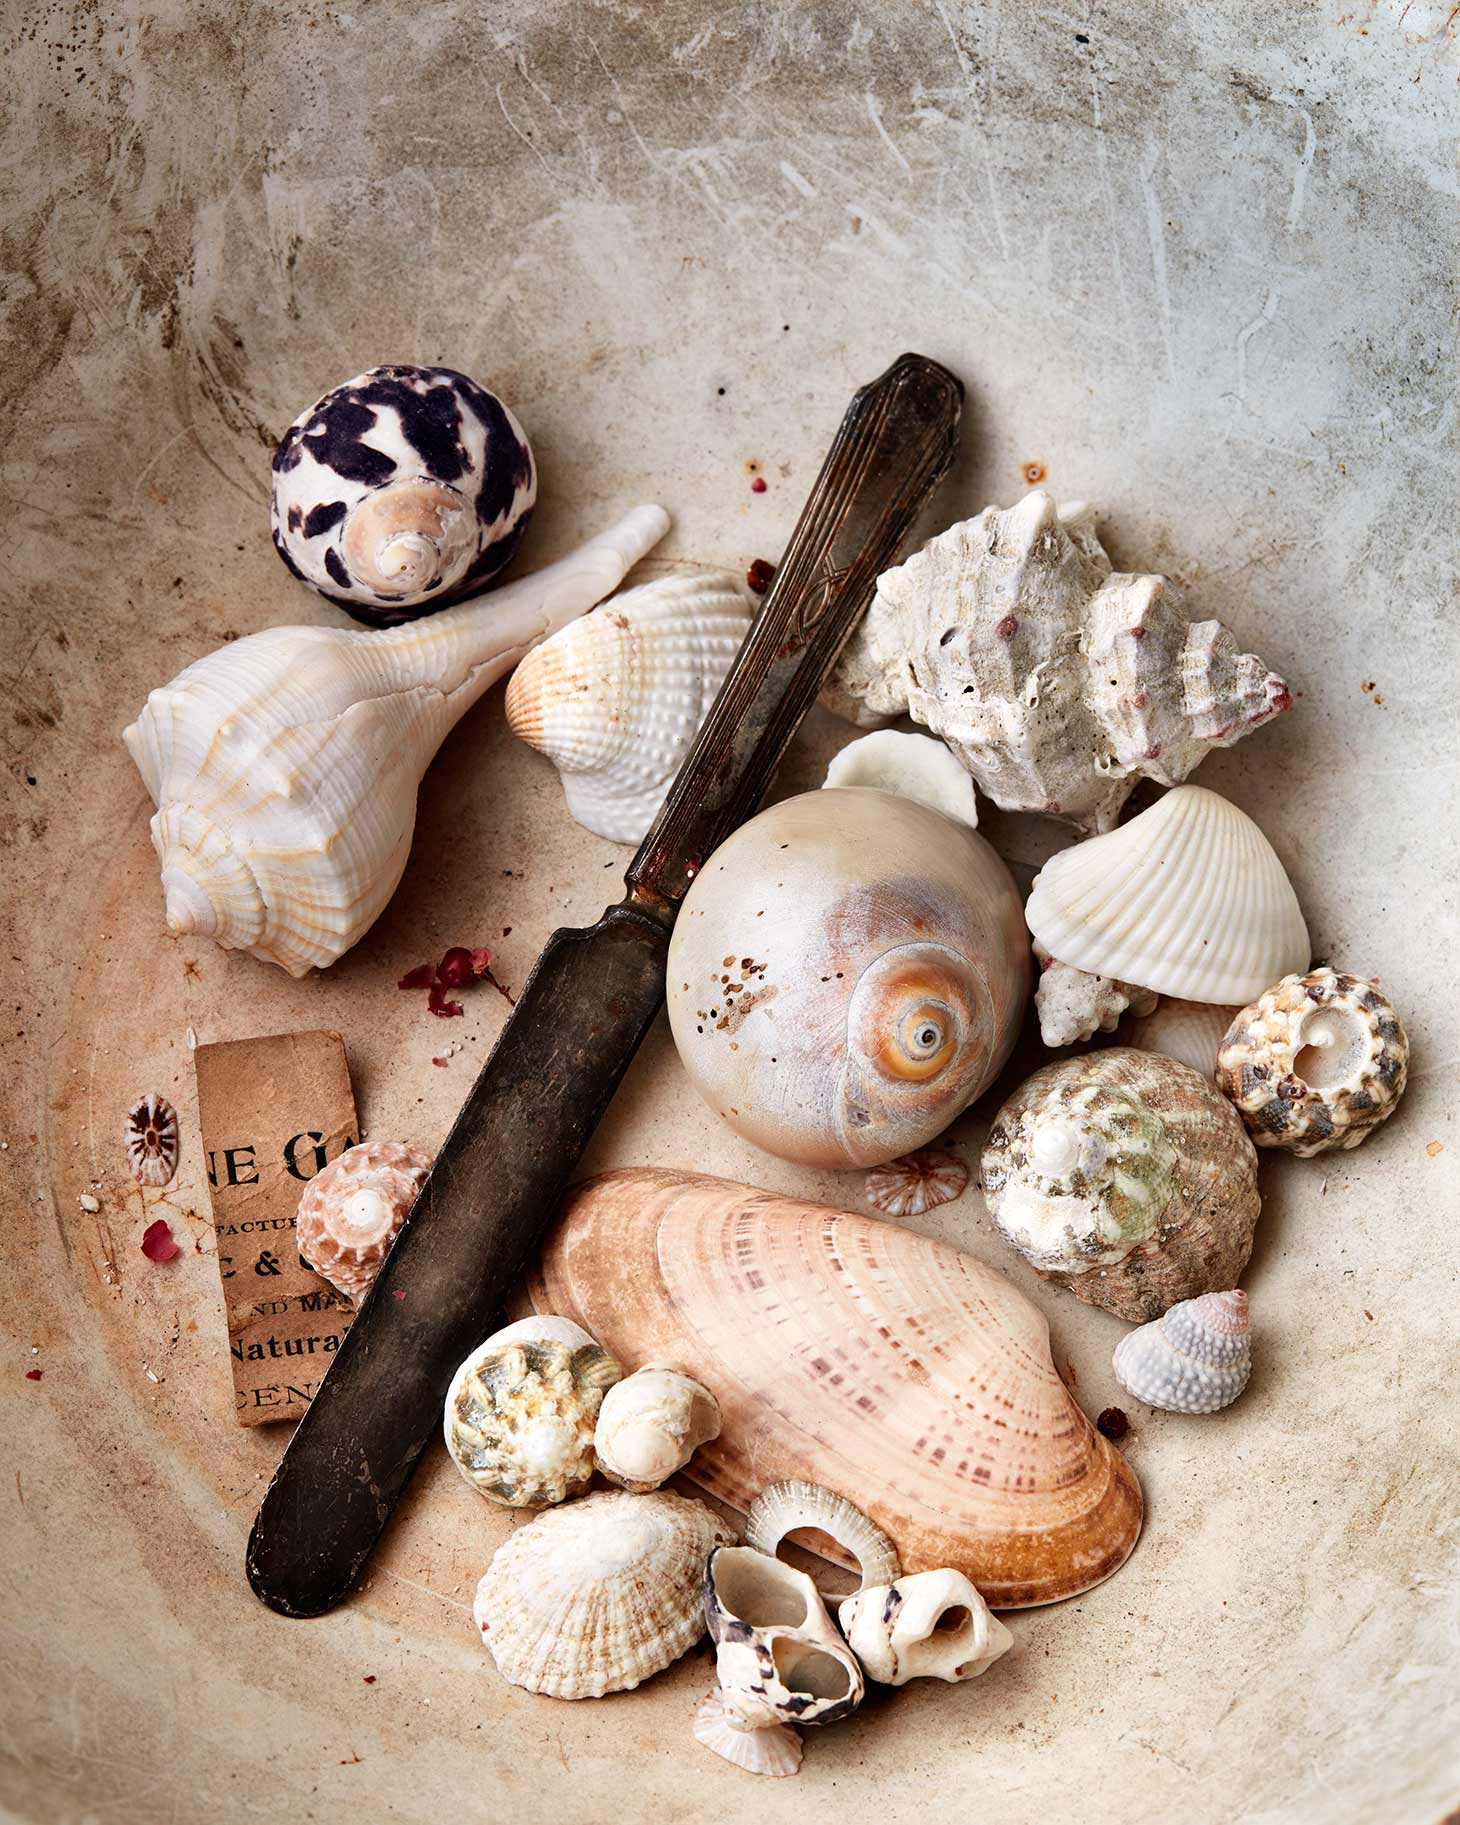 Pretty seashells and other objects in a vintage bowl